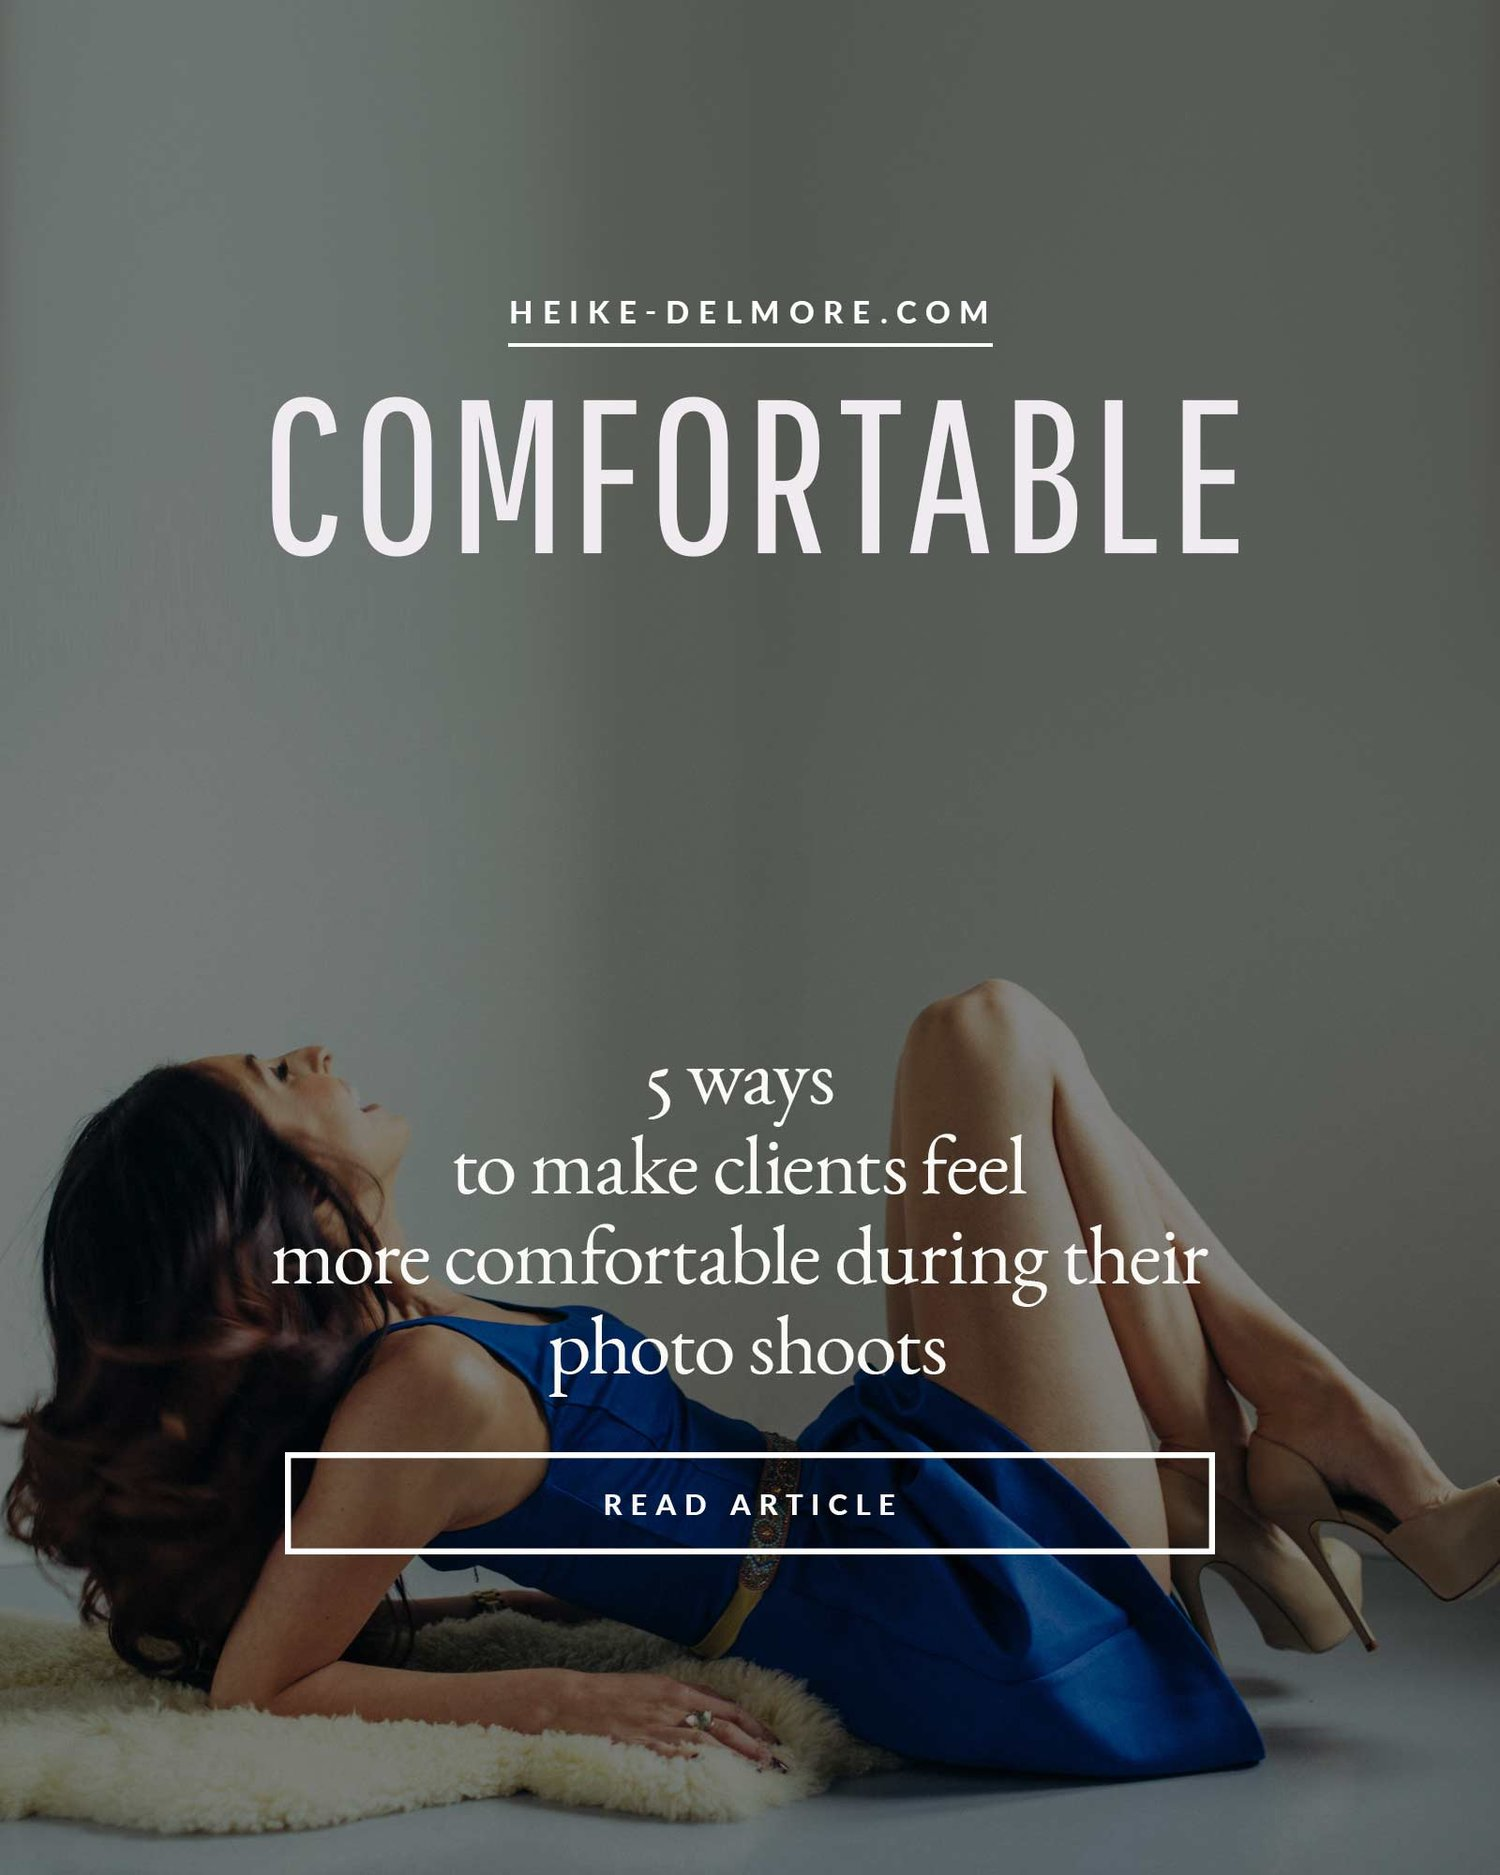 5 ways to make clients more comfortable during their photoshoot